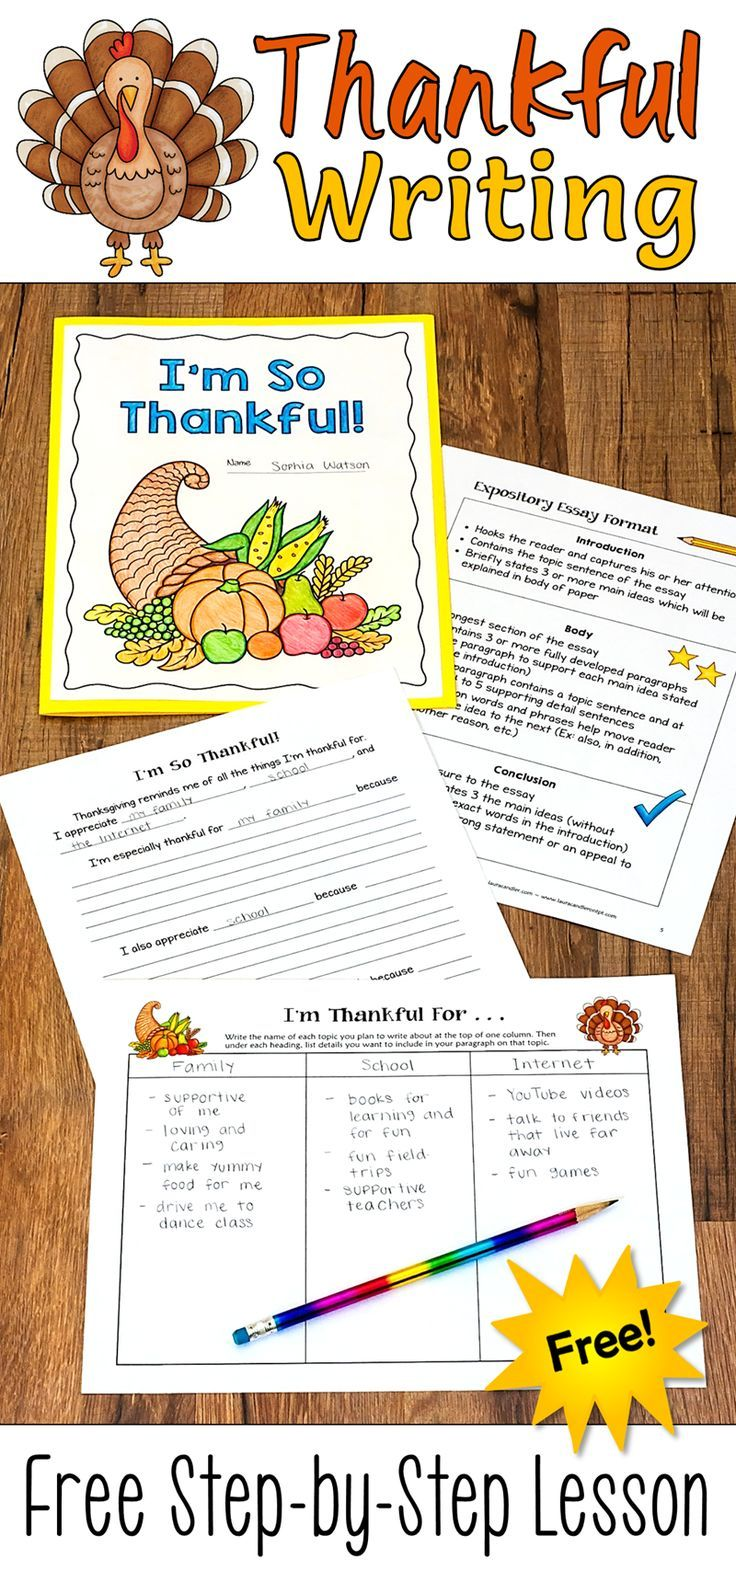 009 Thanksgiving Essay Example Fantastic In Spanish Writing For 3rd Grade Assignment Full